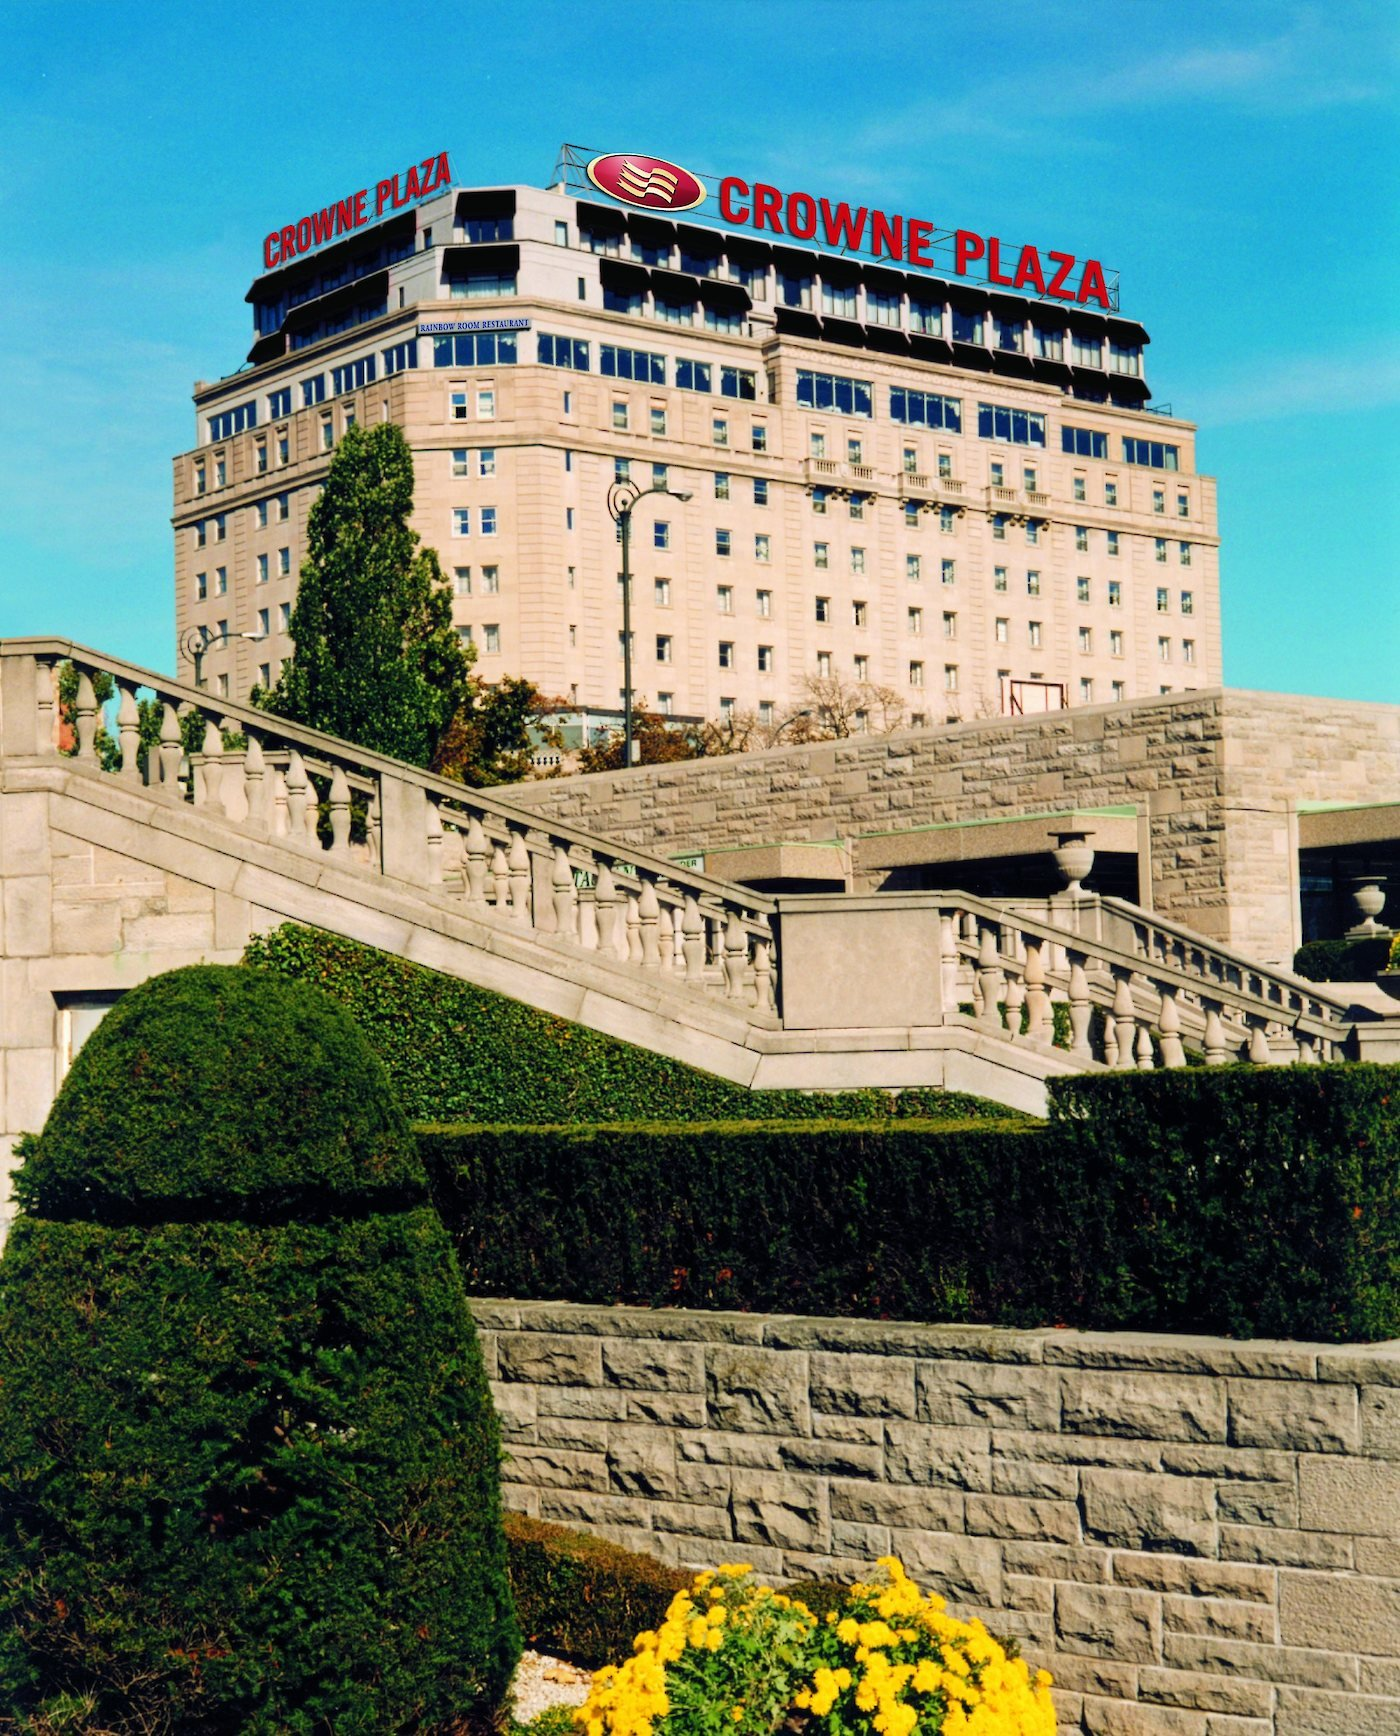 Crowne Plaza Hotel - Where To Stay